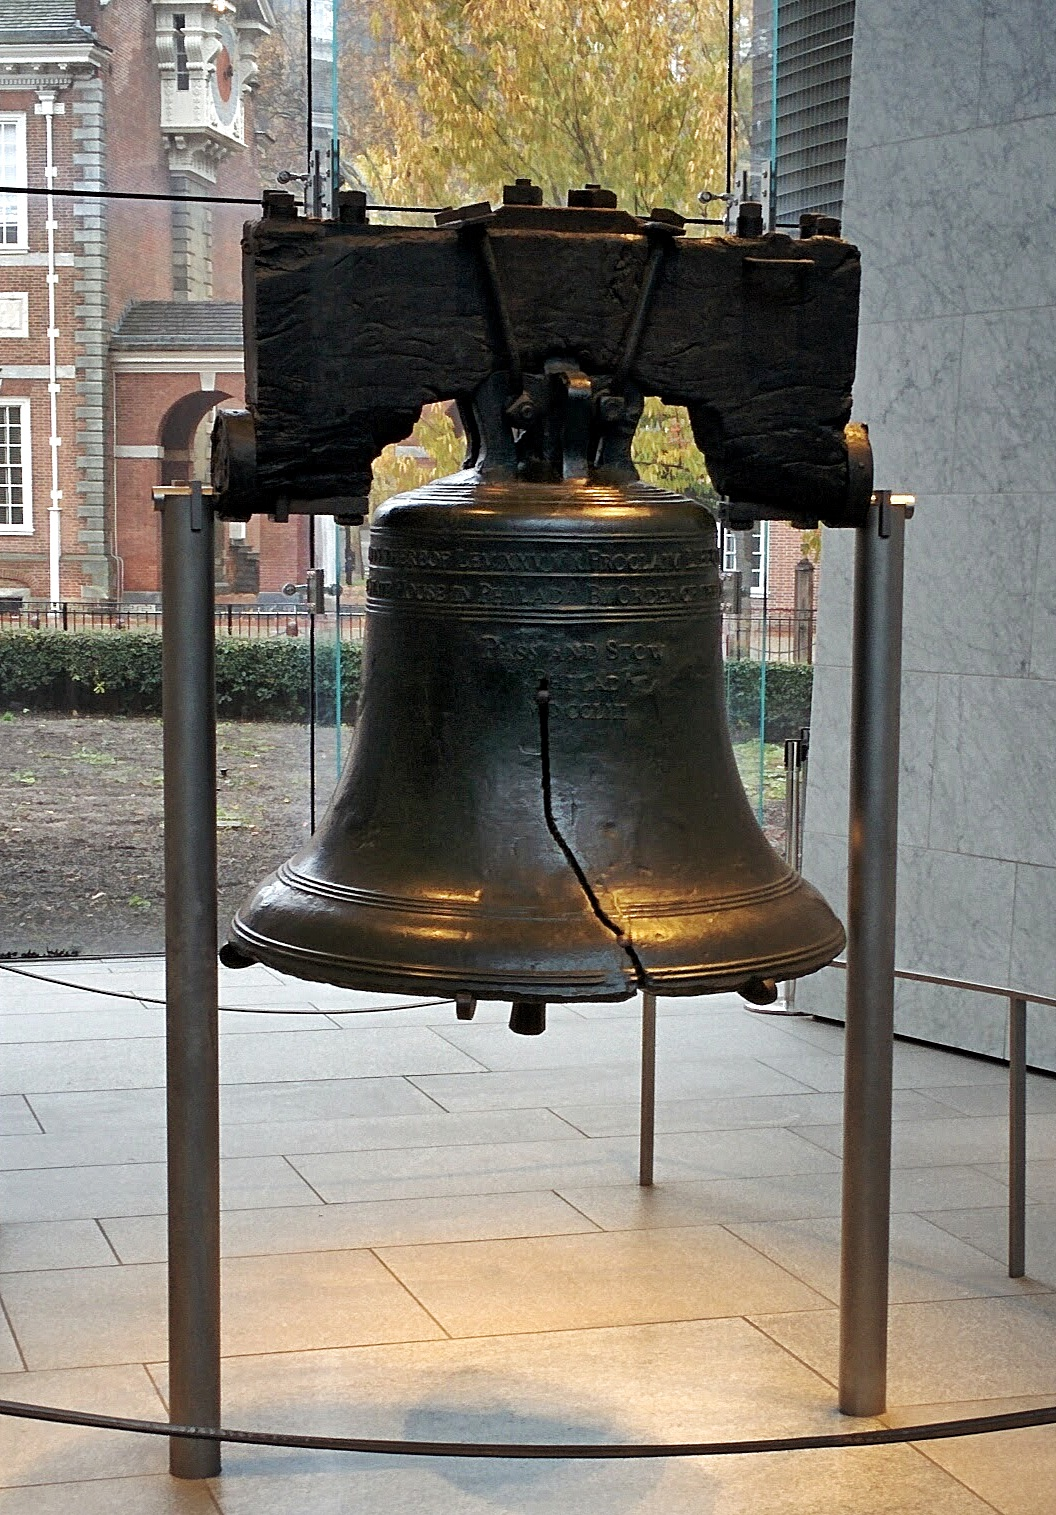 Use My Camera The Opposite Side Of The Liberty Bell